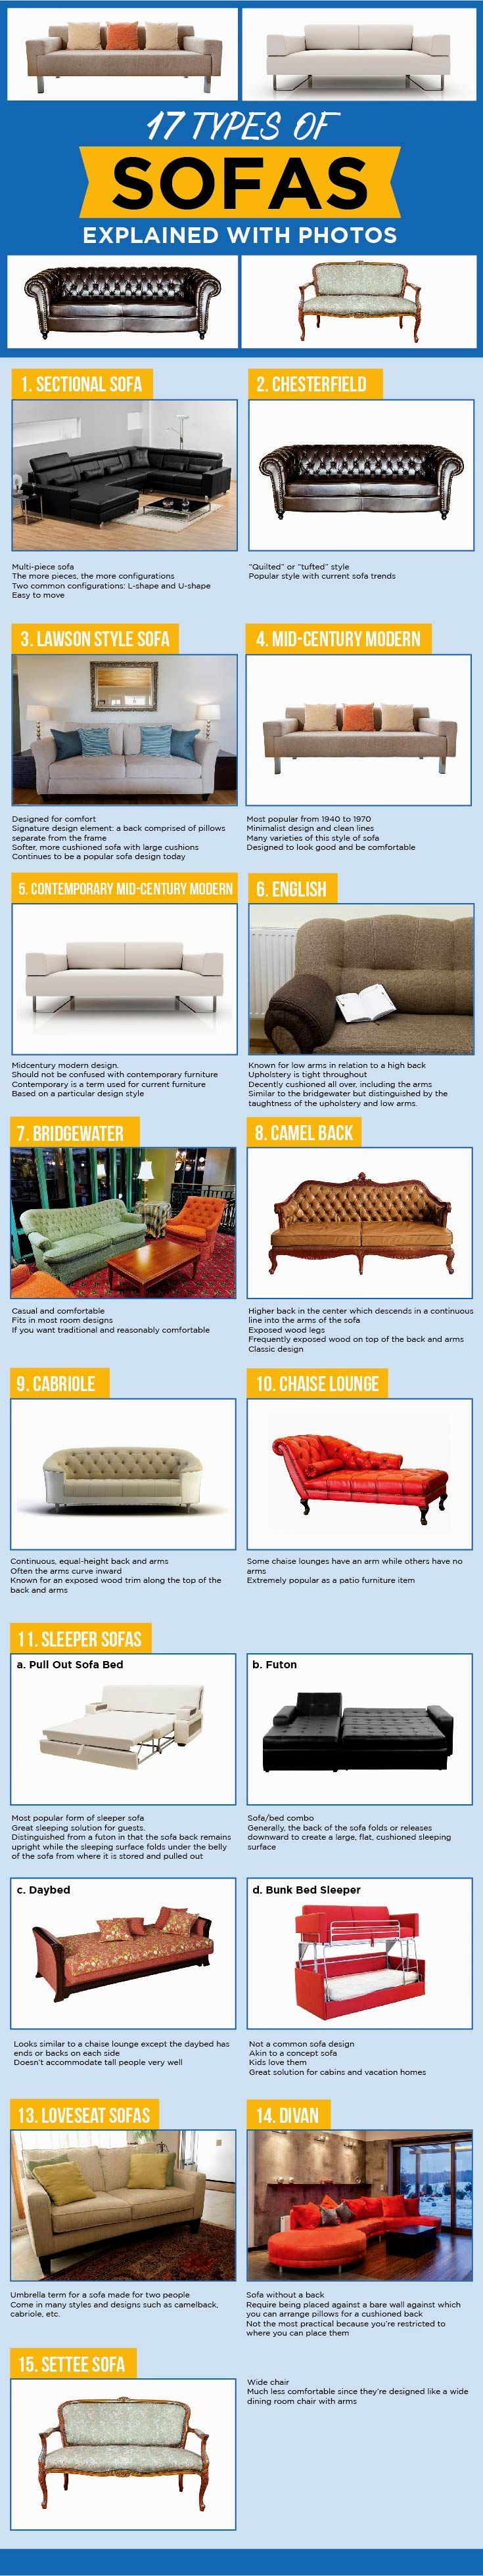 fancy apartment sized sofas ideas-Latest Apartment Sized sofas Wallpaper